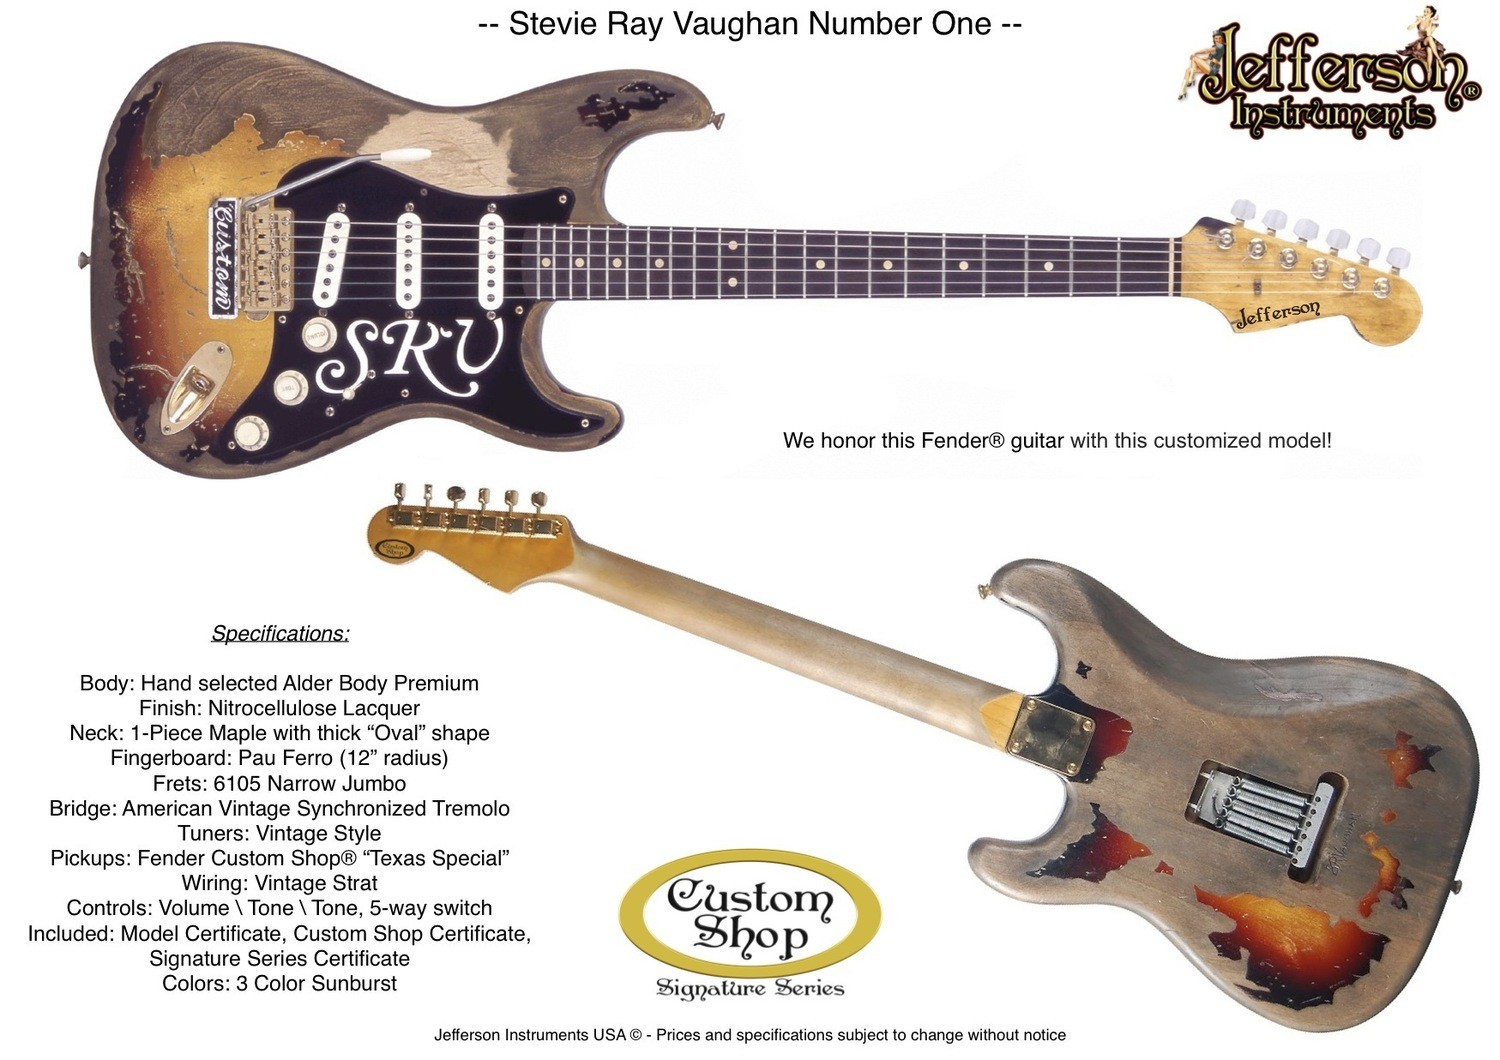 Strat Custom Shop Stevie Ray Vaughan